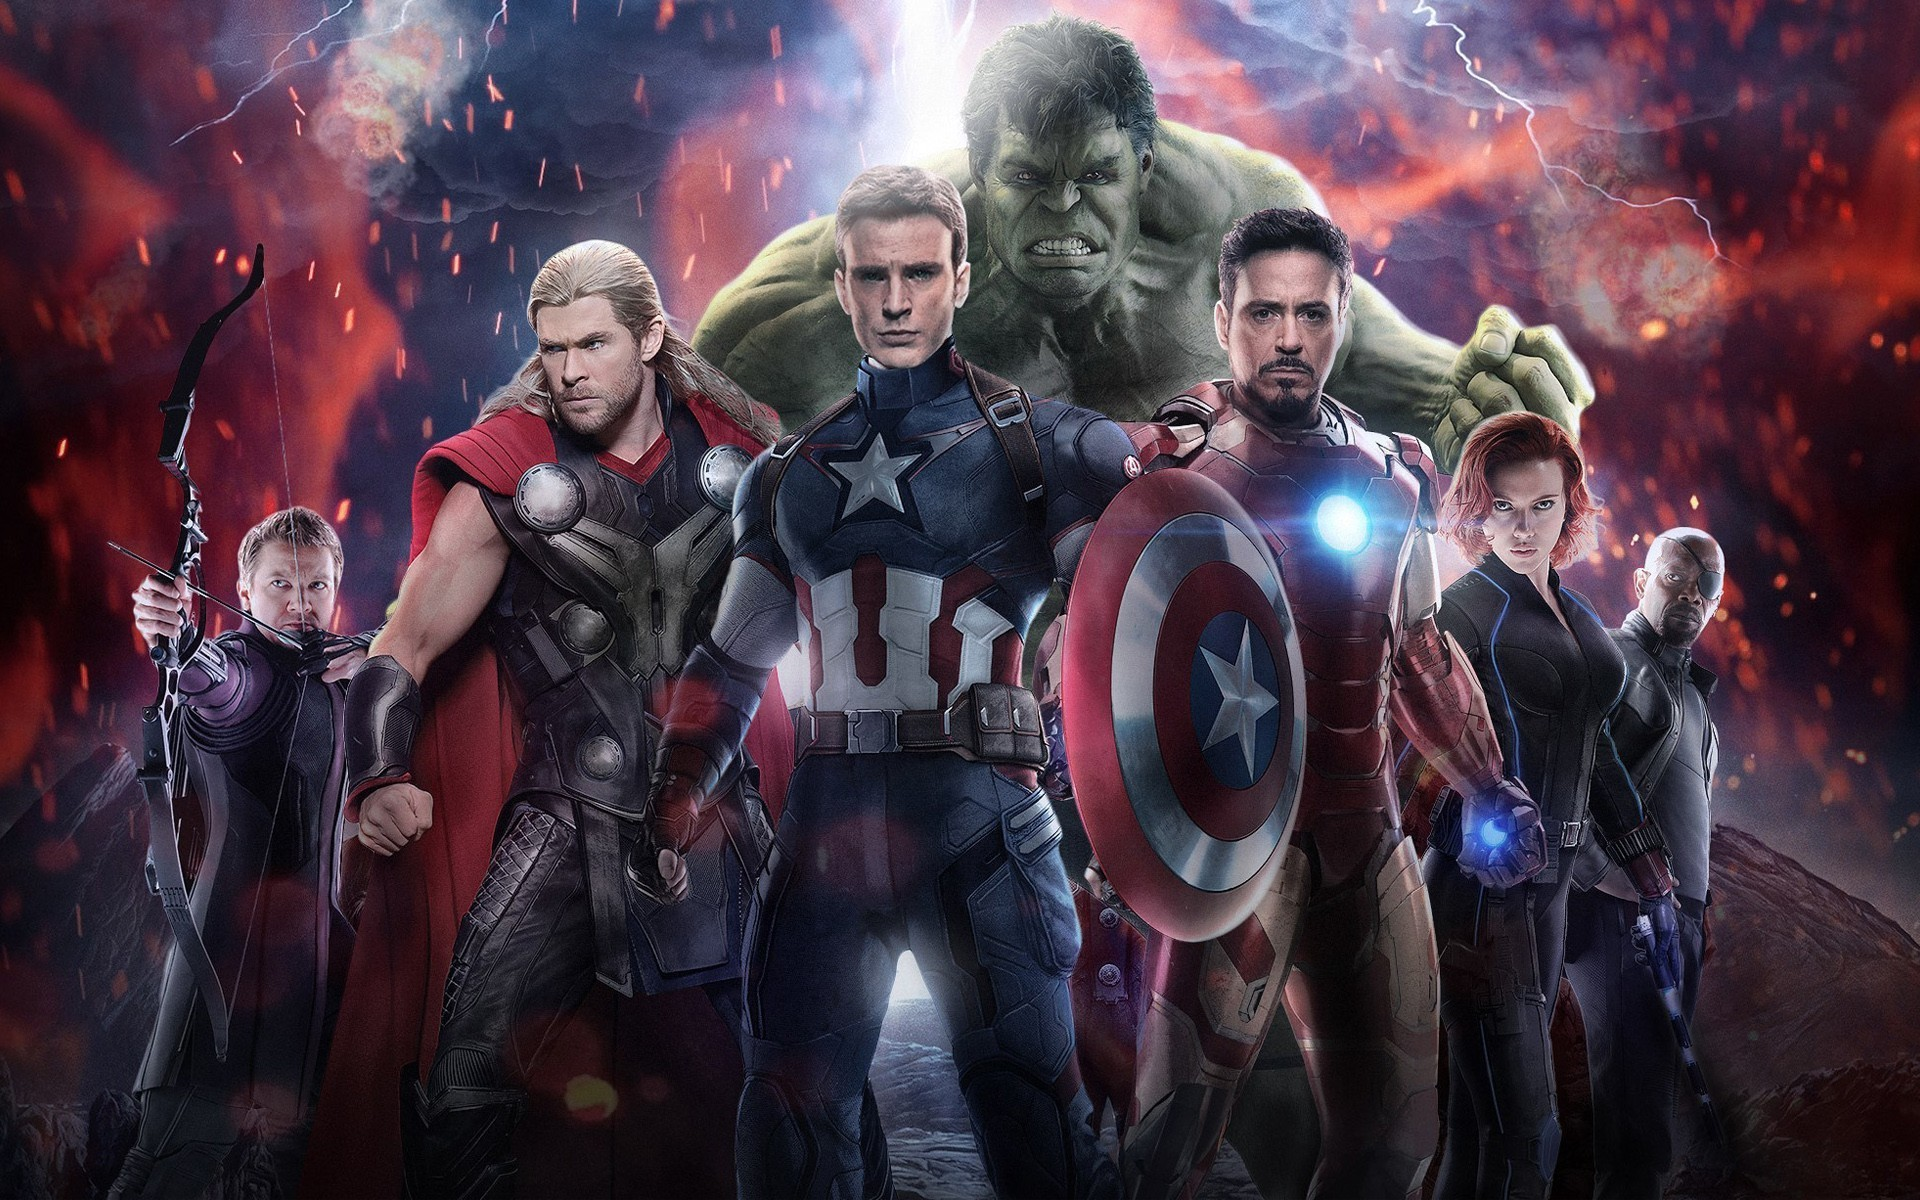 Avengers age of ultron wallpapers 67 images - Images avengers ...